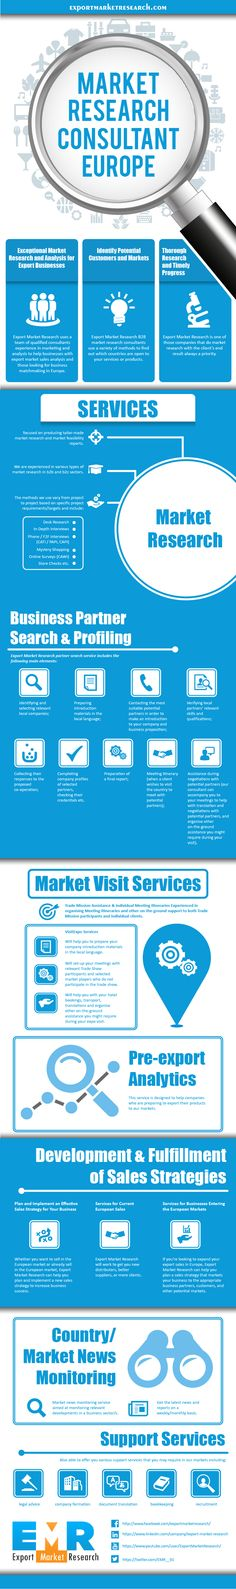 http://www.exportmarketresearch.com/infographics-export-market-research-consultants/ - Export Market Research Ltd - Market Research Consultants, offers a market research services for companies who wish to enter a new market or to improve their access to markets in the CEE region, Scandinavia and China. Visit us at exportmarketresearch.com for more information.